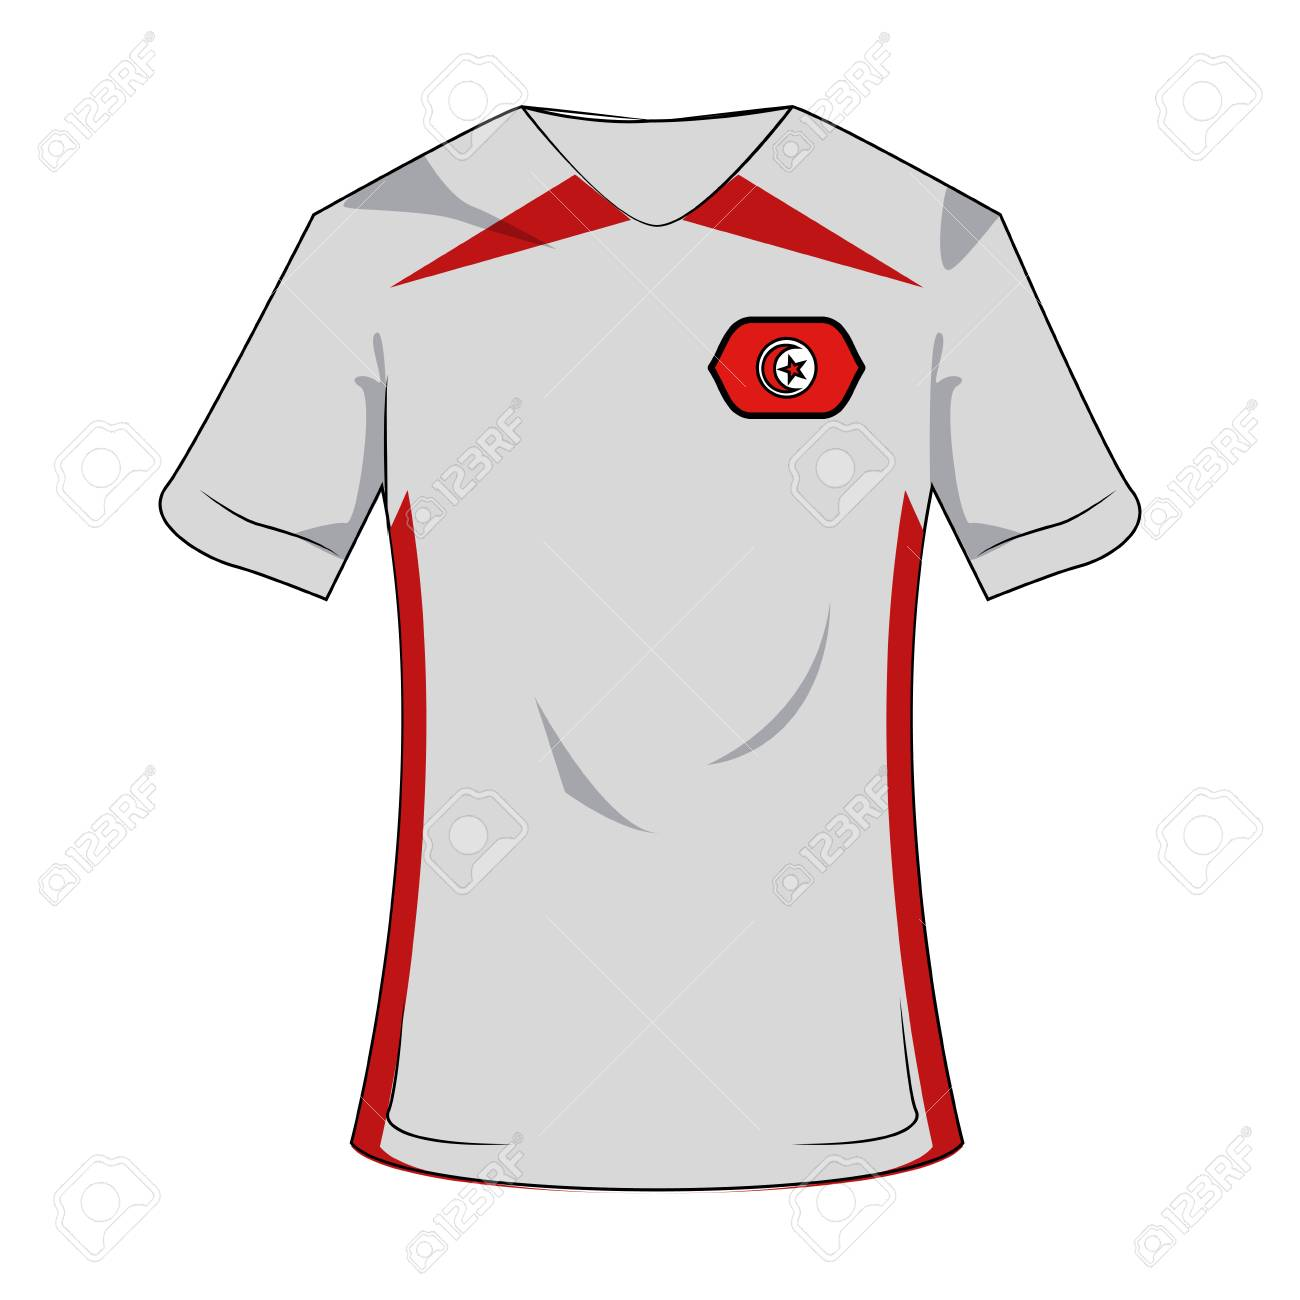 new product 0e73d ba7f8 Tunisia national tshirt soccer sport wear vector illustration..